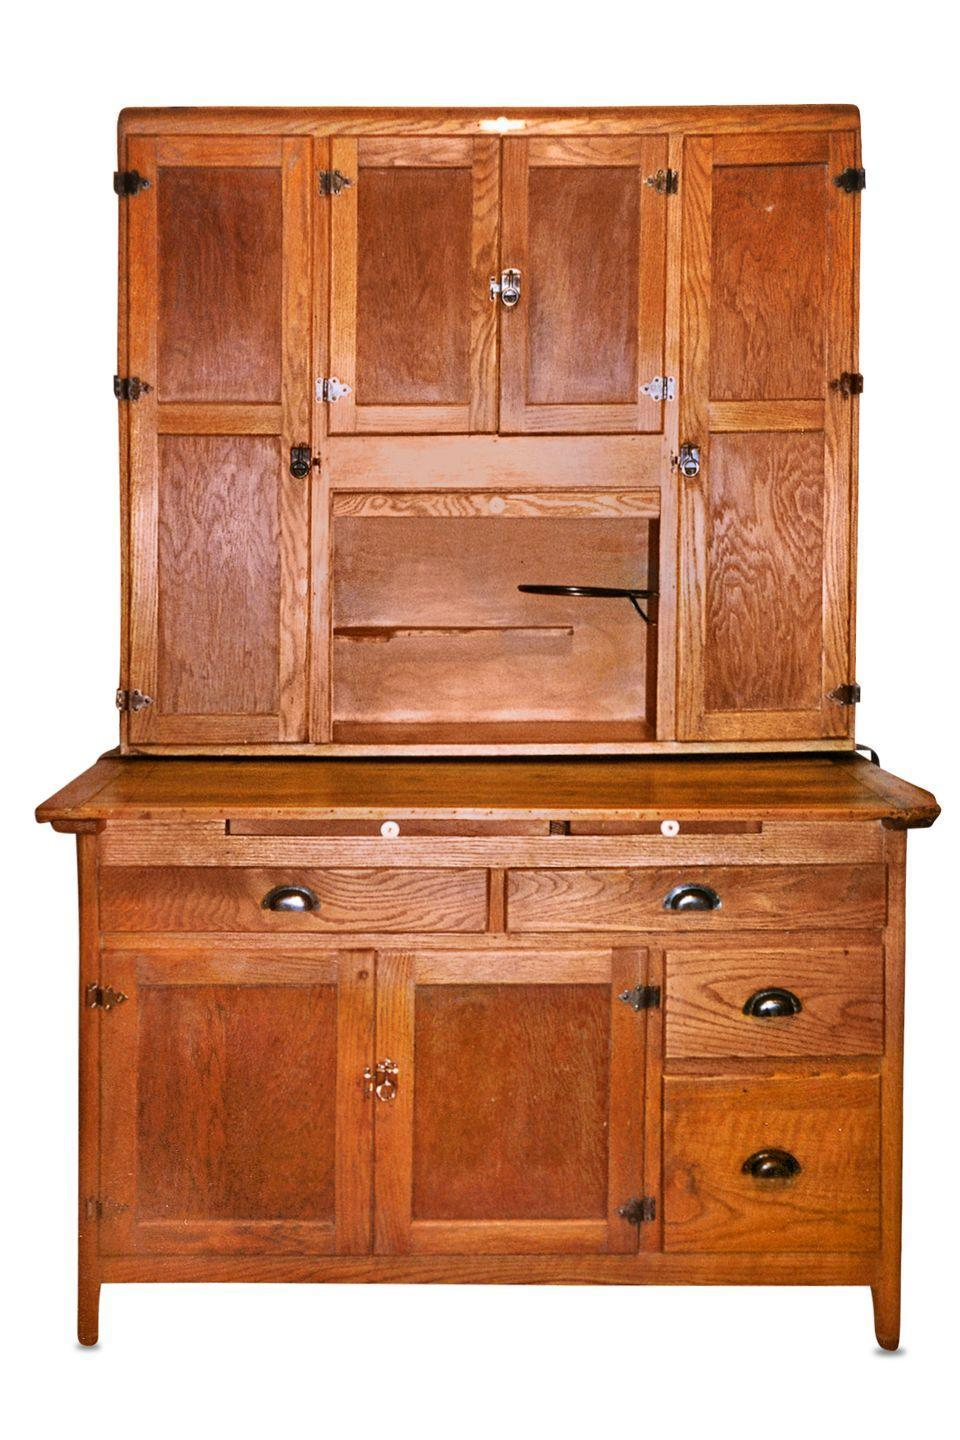 """<p><strong>What it was worth (2008): </strong>$1,000</p><p><strong>What it's worth now:</strong> $1,800</p><p><a href=""""https://www.ebay.com/itm/Oak-Hoosier-Cabinet-with-flour-bin/183257071296"""" rel=""""nofollow noopener"""" target=""""_blank"""" data-ylk=""""slk:This gorgeous cabinetry"""" class=""""link rapid-noclick-resp"""">This gorgeous cabinetry</a> would fit perfectly in a <a href=""""https://www.countryliving.com/home-design/house-tours/g22854868/idaho-farmhouse-house-tour/"""" rel=""""nofollow noopener"""" target=""""_blank"""" data-ylk=""""slk:cute country cottage."""" class=""""link rapid-noclick-resp"""">cute country cottage.</a></p>"""